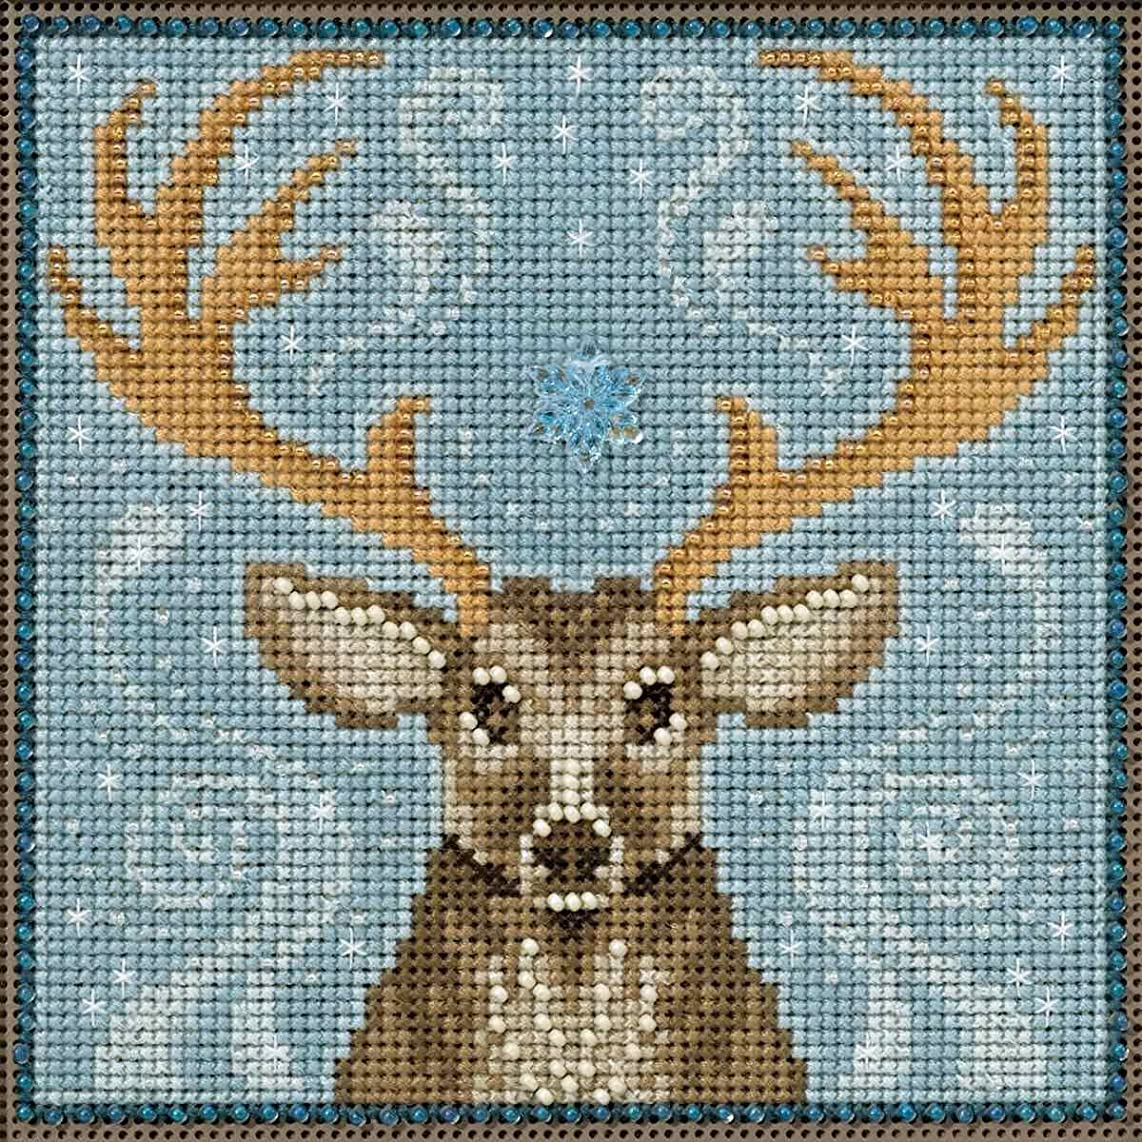 Winter Stag Beaded Counted Cross Stitch Kit Mill Hill Buttons & Beads 2016 Winter Series MH141636 pl623284104358